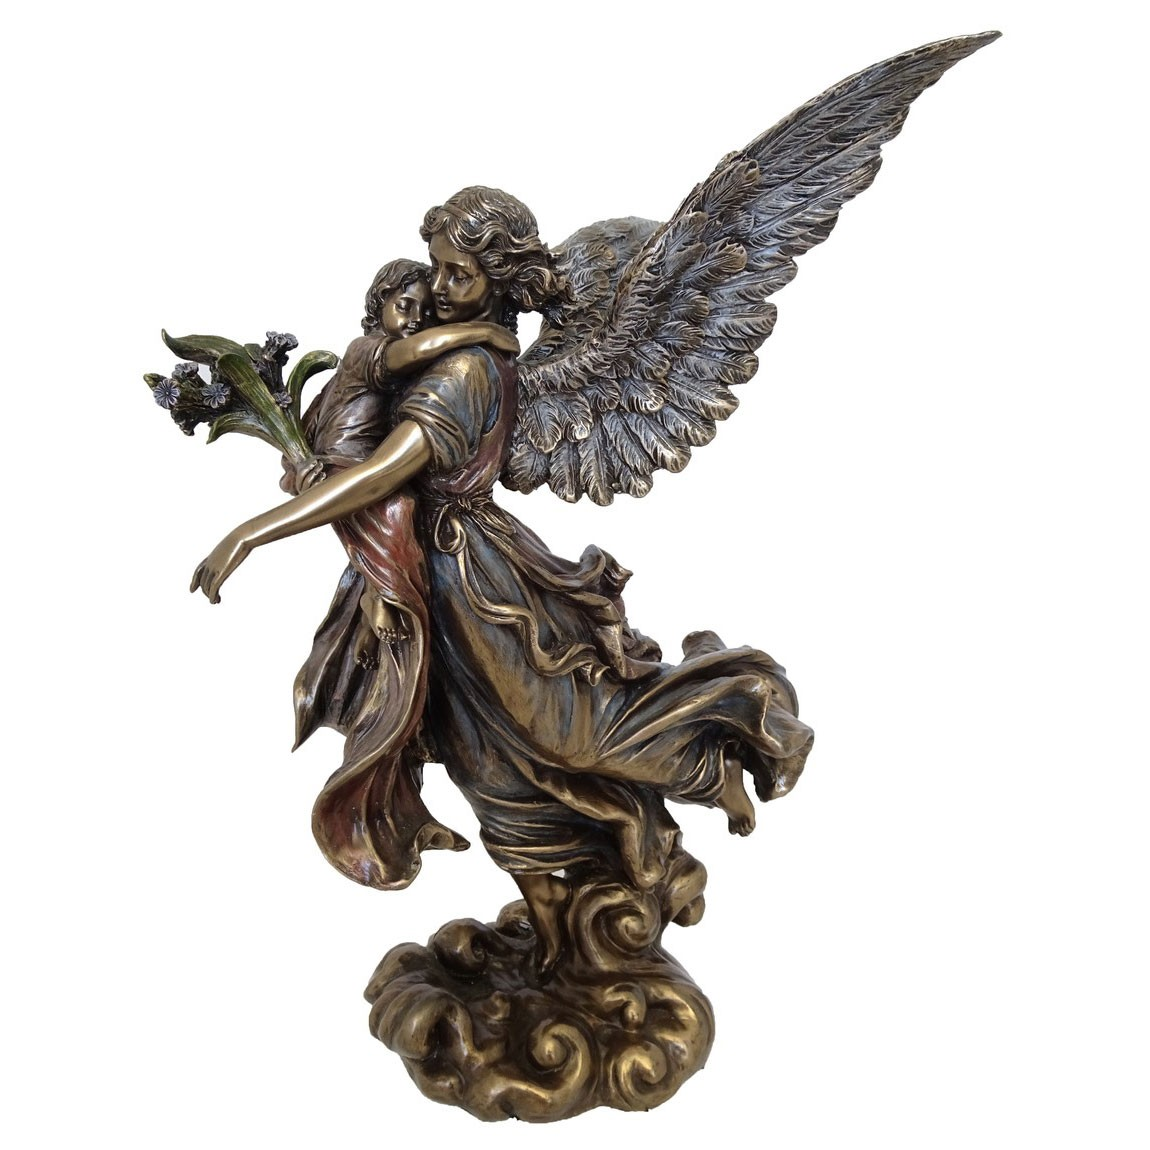 Veronese Cold Cast Bronze Coated Figurine, Guardian Angel with Infant